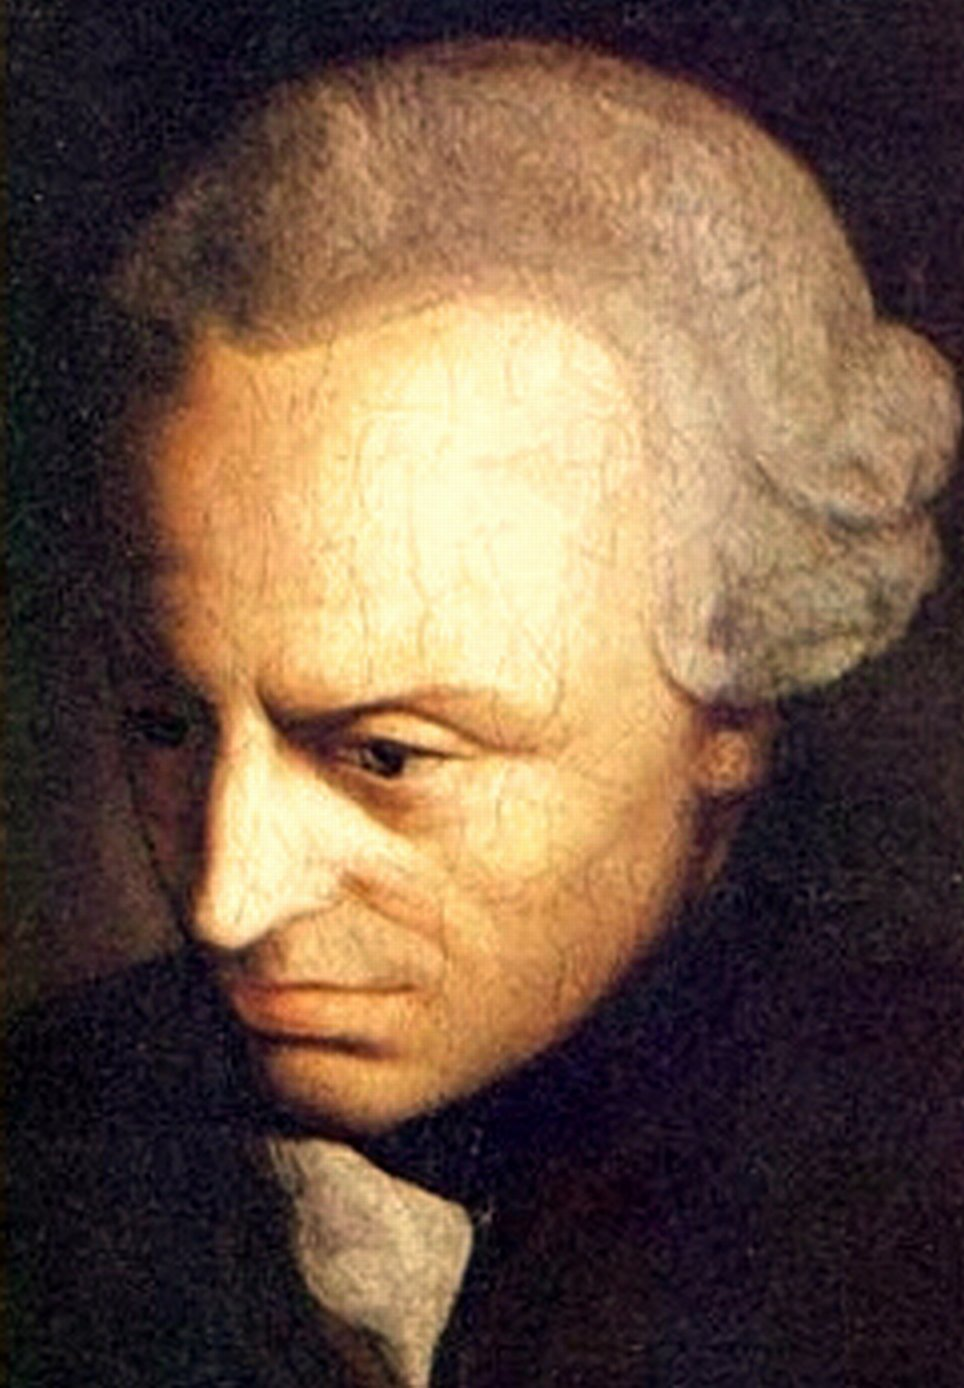 http://upload.wikimedia.org/wikipedia/commons/4/43/Immanuel_Kant_%28painted_portrait%29.jpg